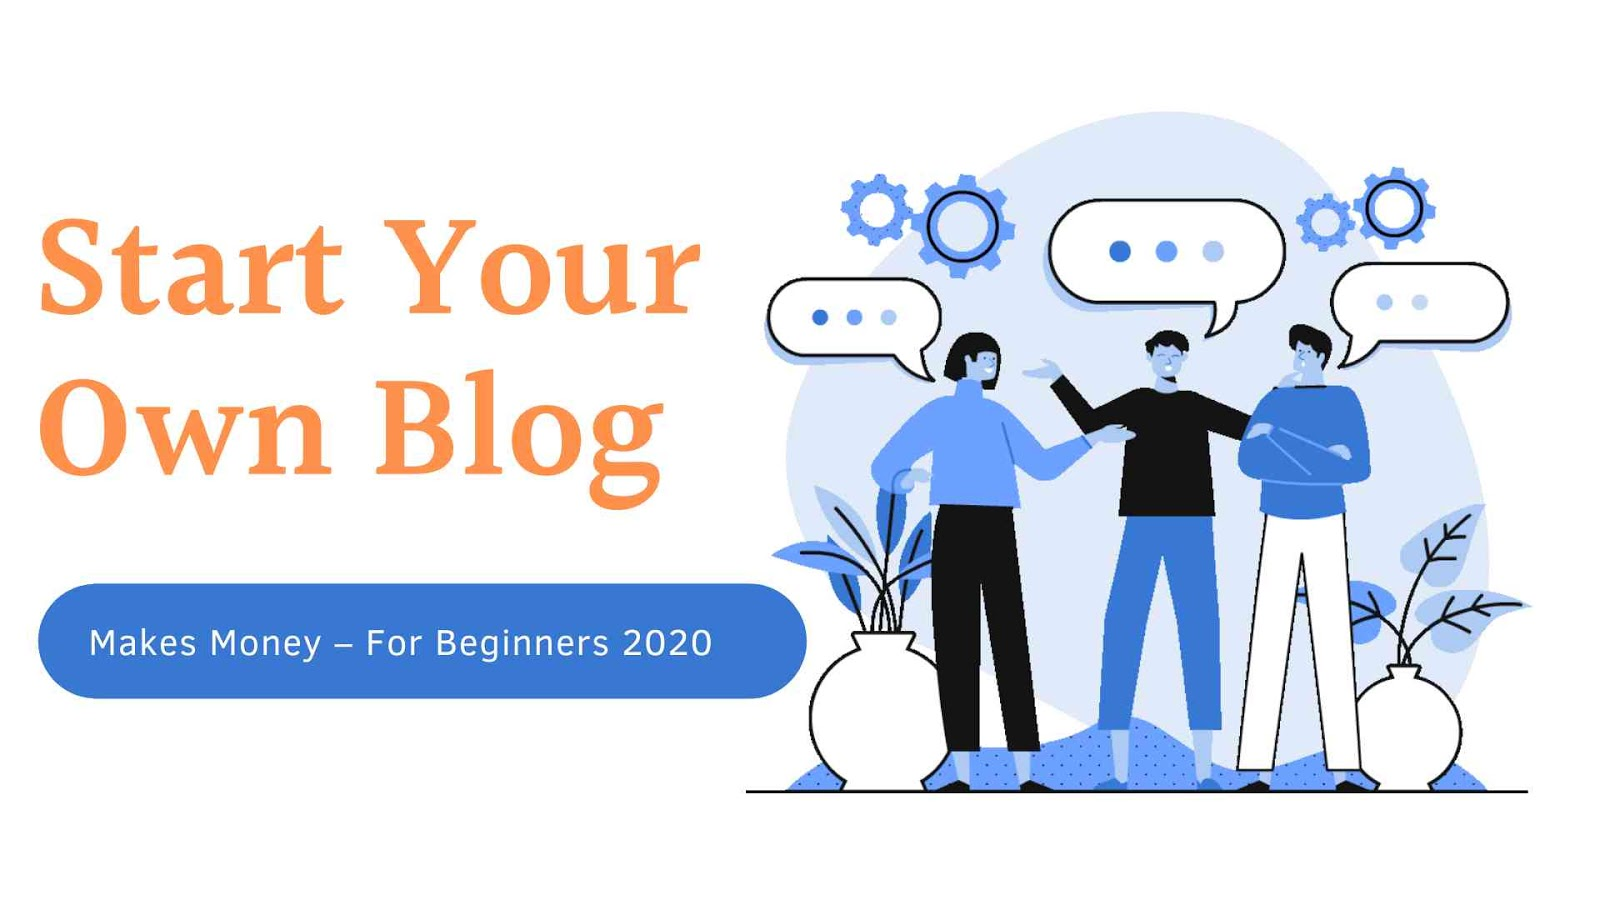 How to Start a Blog,how to create a blog,how to make m,how to make a ,how to blog,how to start a blog for free,